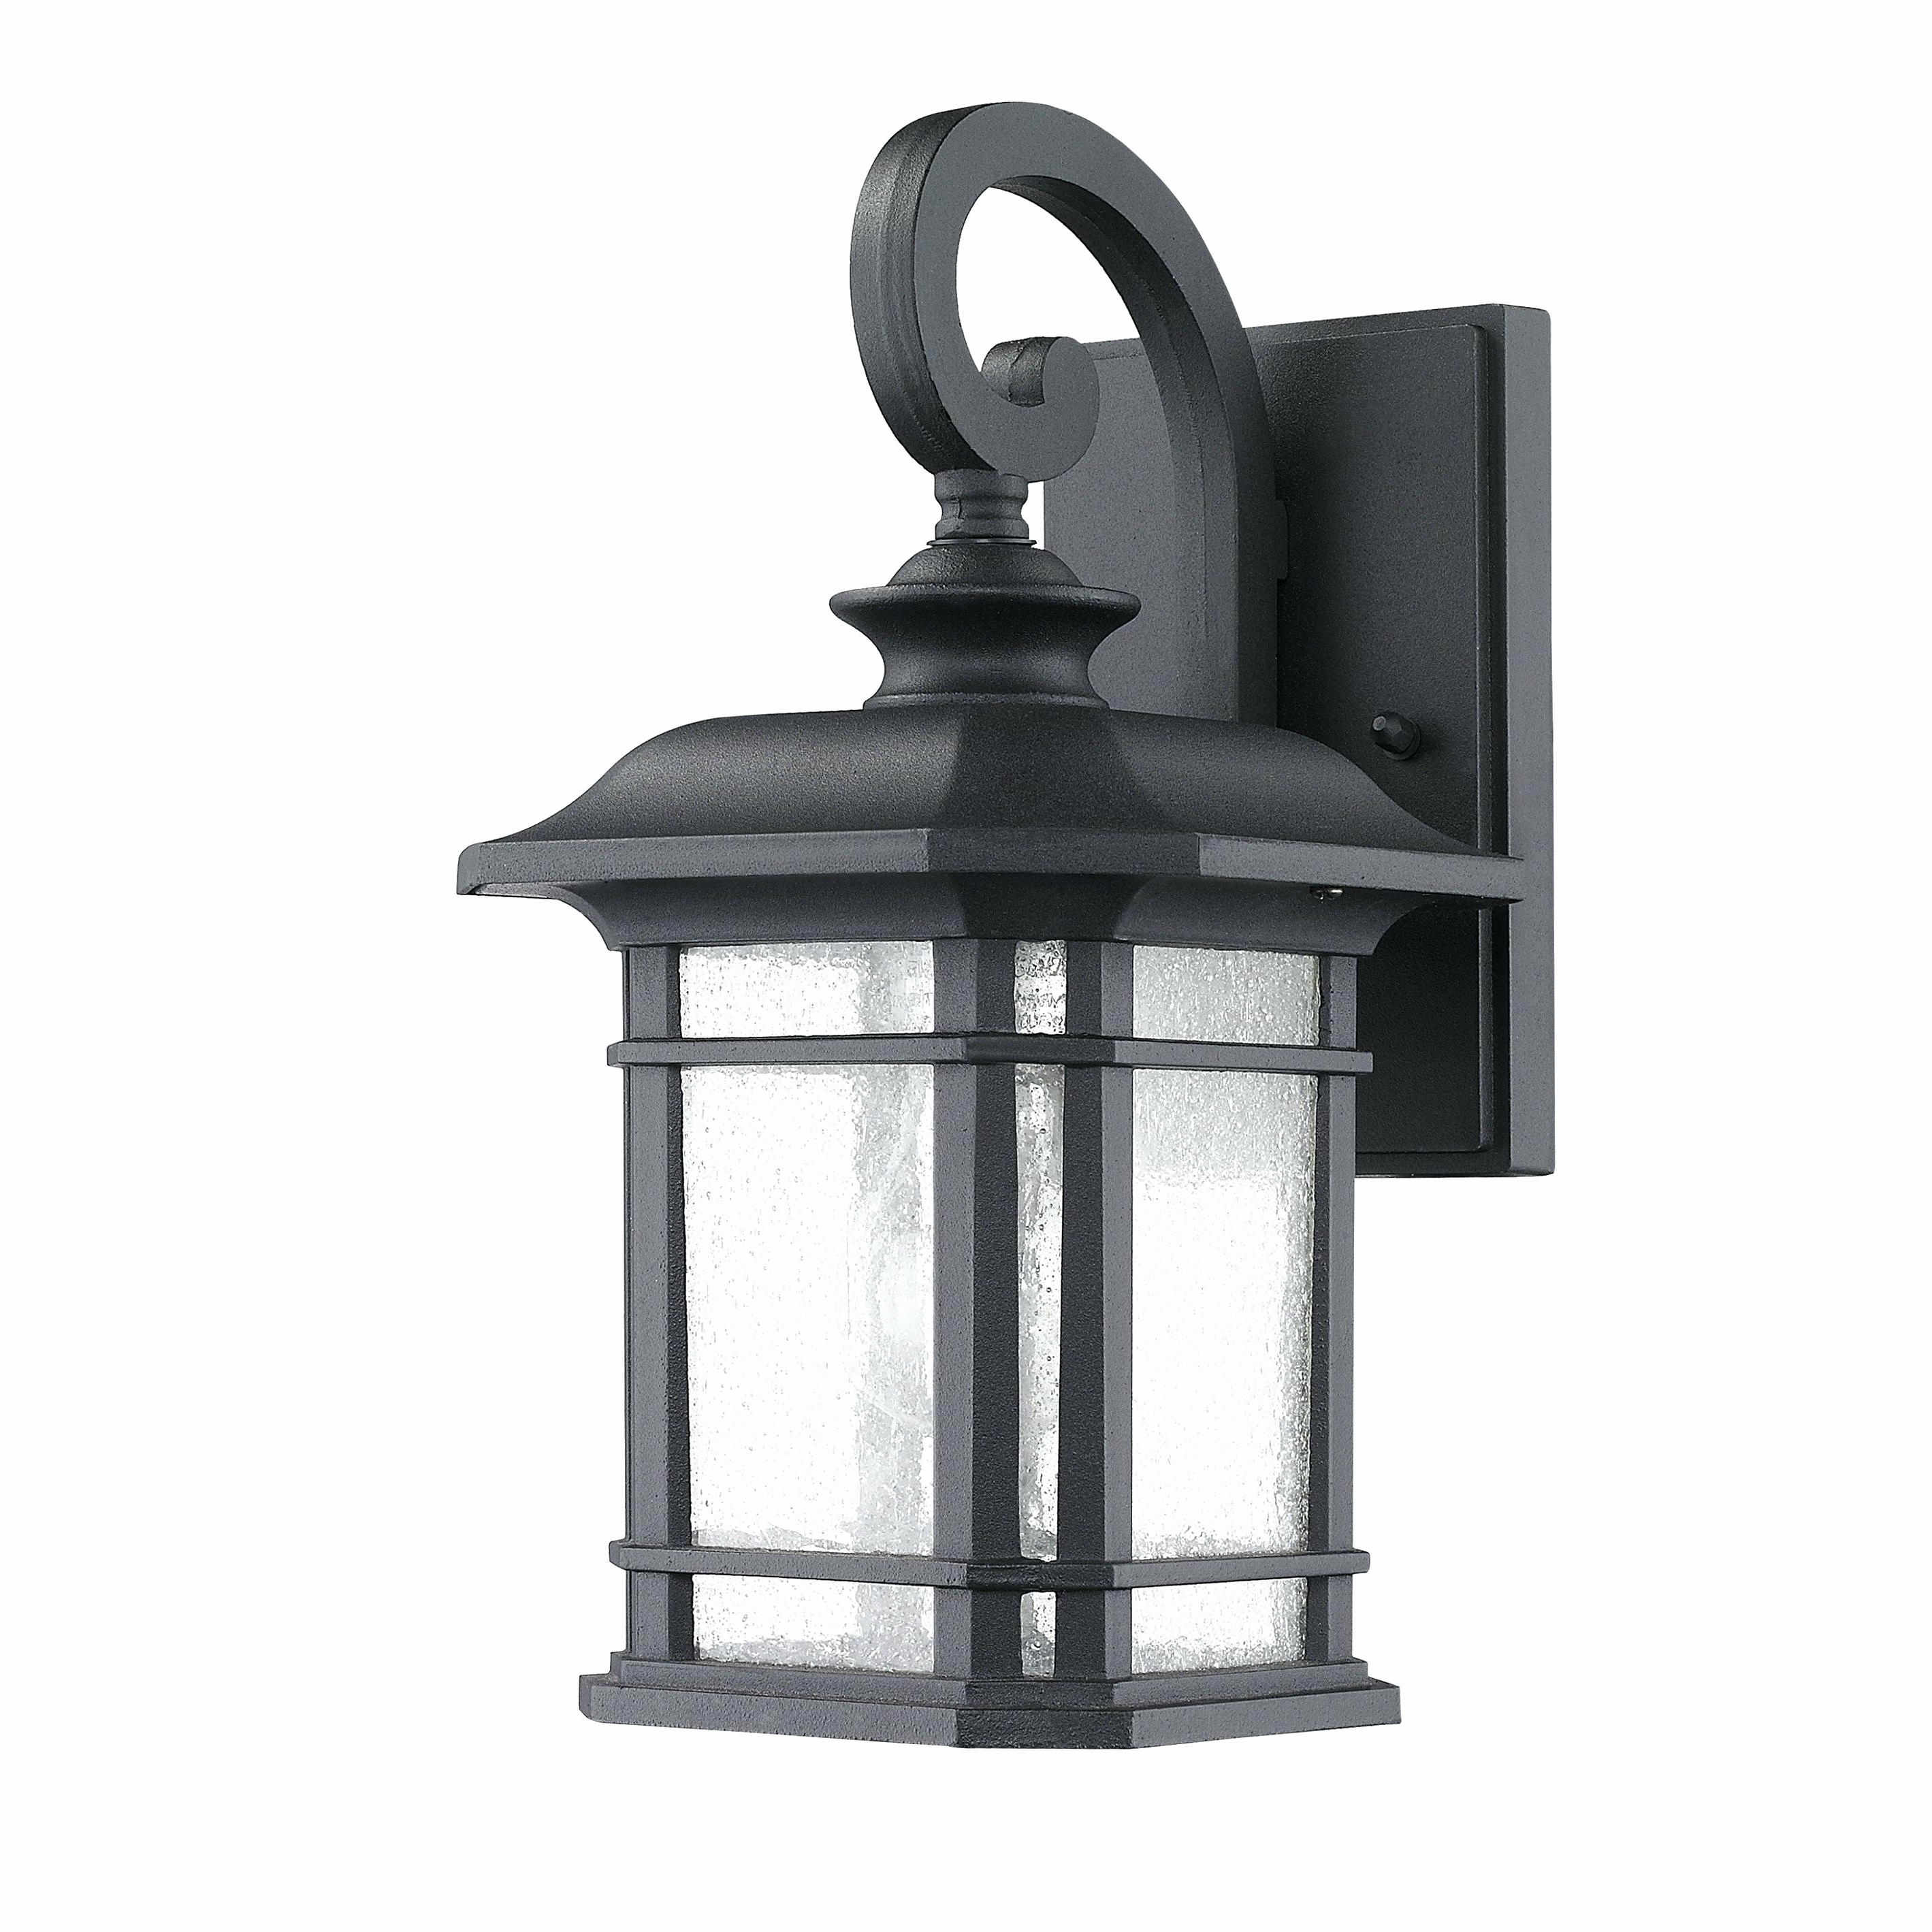 Motion Sensor Post Light Elegant Outdoor Garage Outdoor Lanterns Within Recent Elegant Outdoor Lanterns (View 1 of 20)